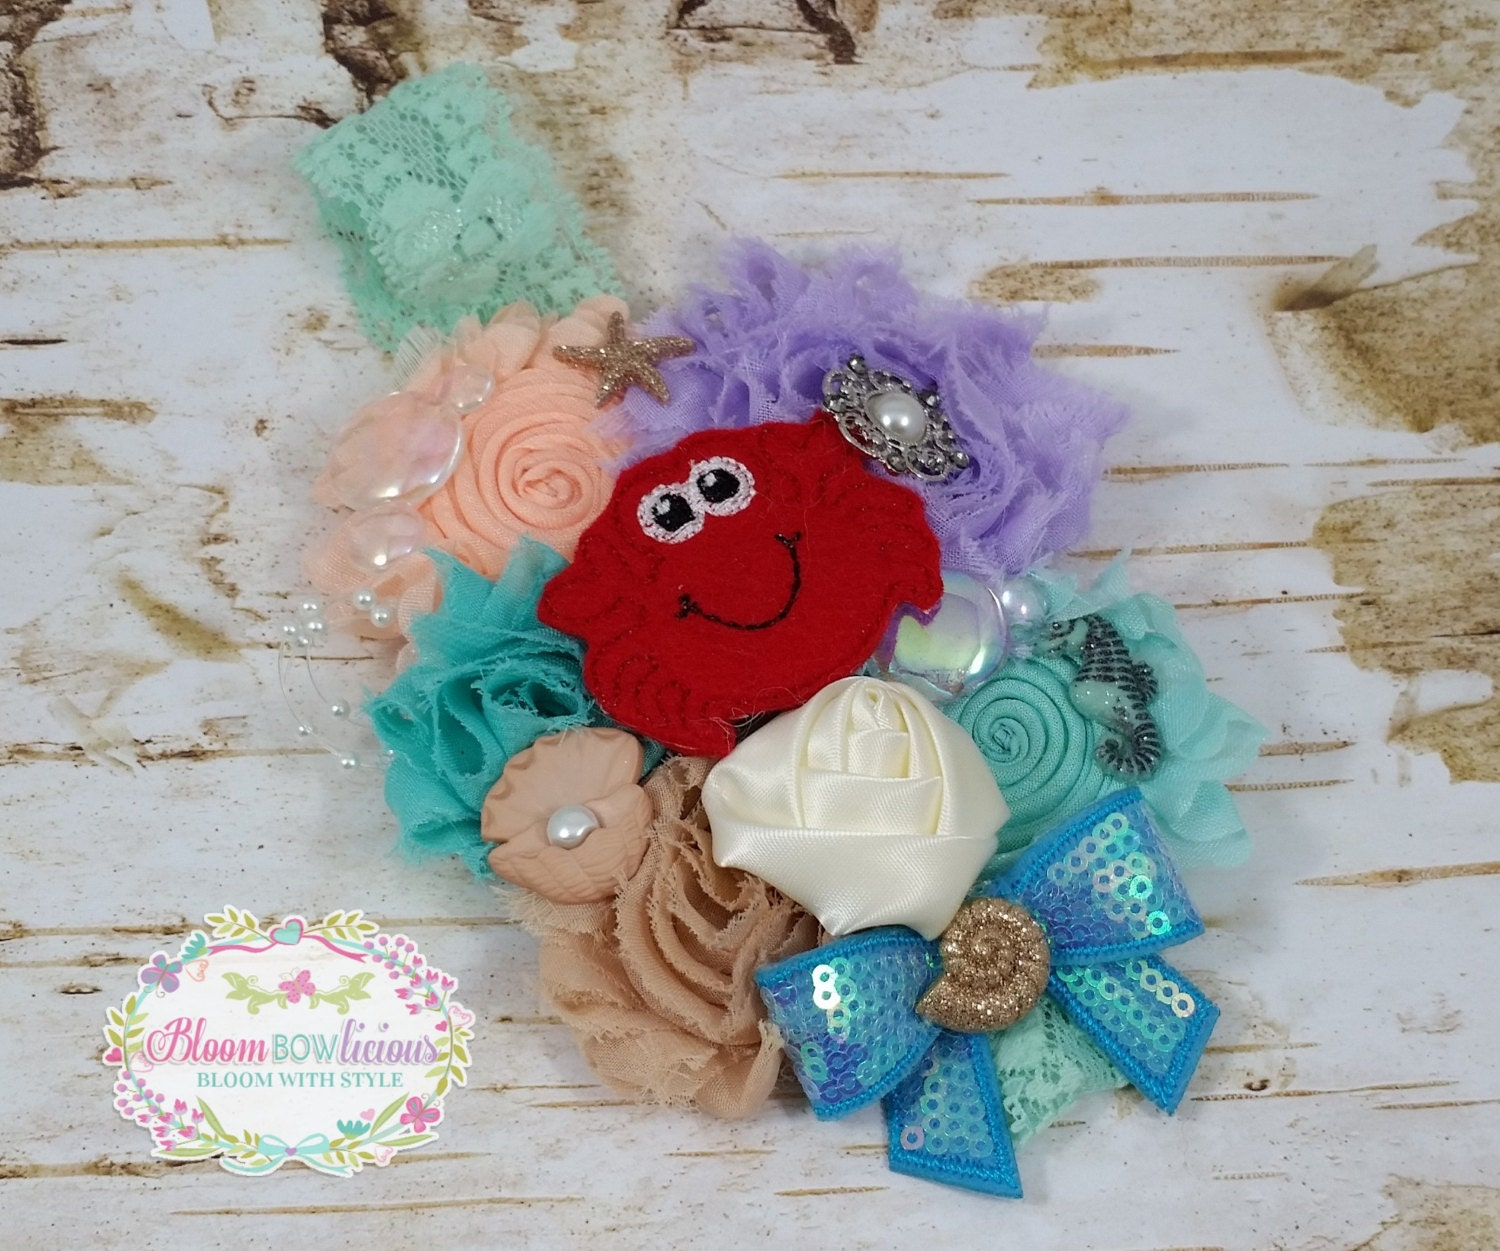 under the sea headband-crabby party in the by Bloombowlicious